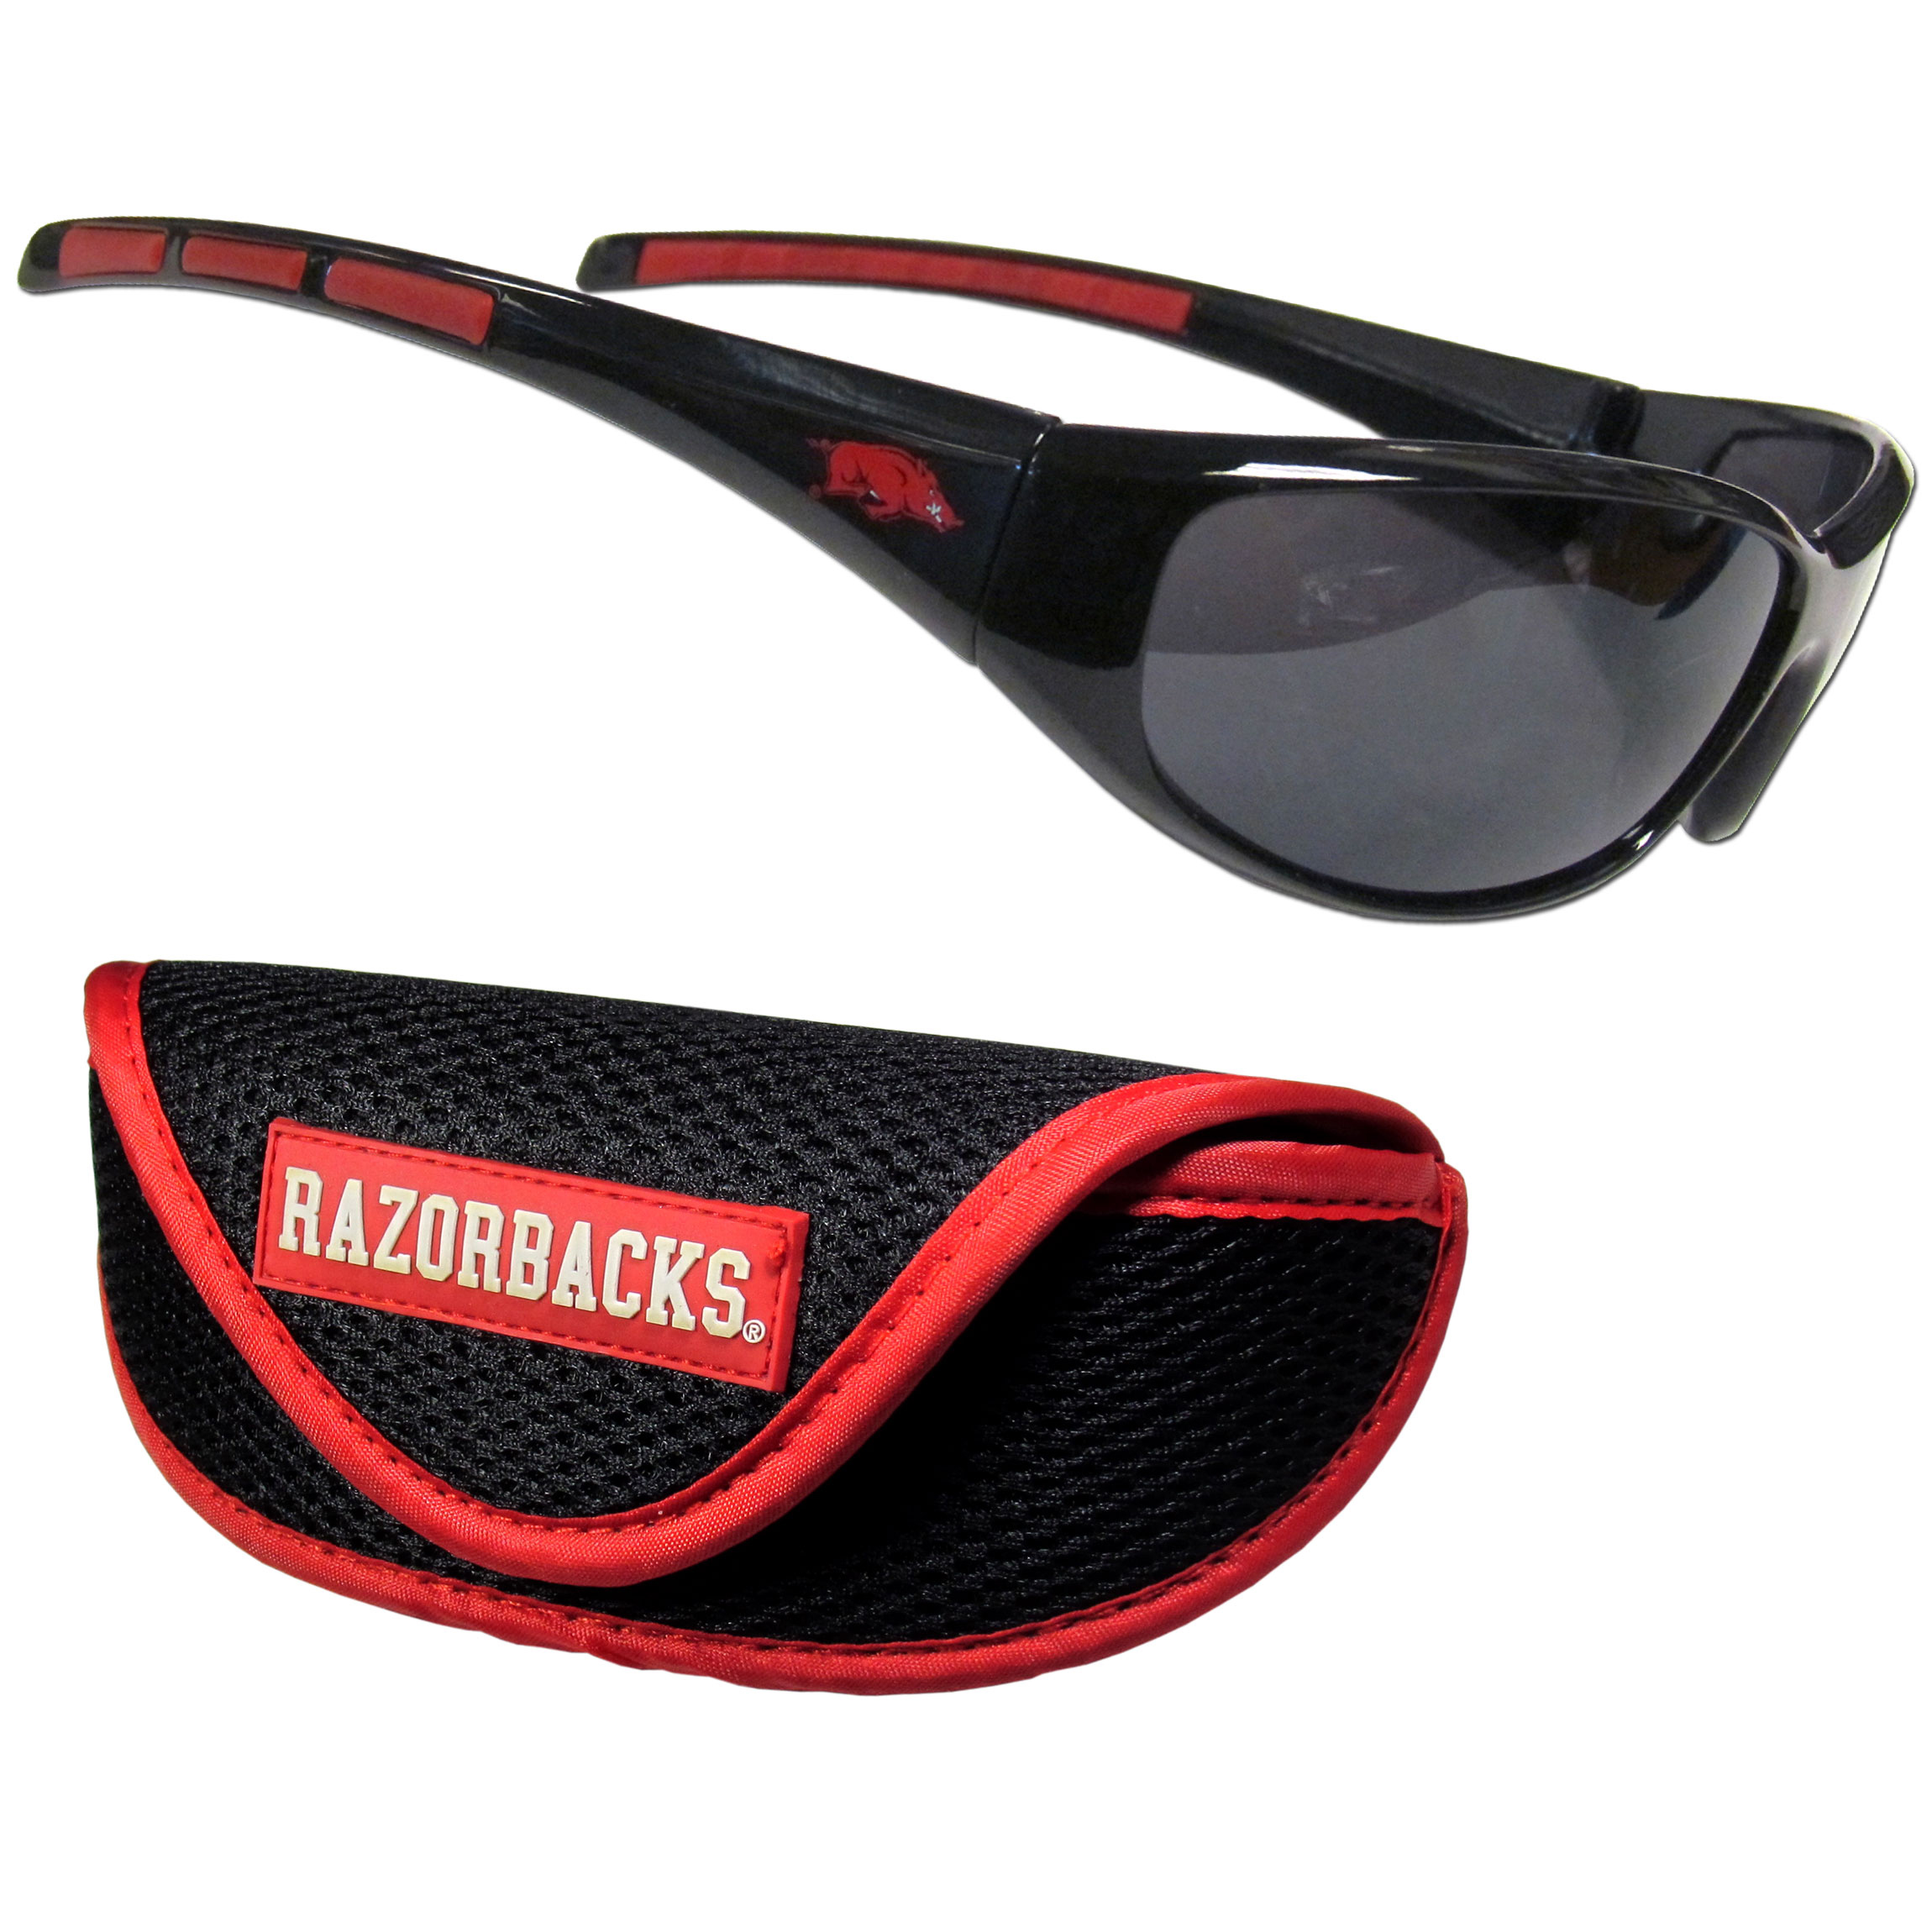 Arkansas Razorbacks Wrap Sunglass and Case Set - This great set includes a high quality pair of Arkansas Razorbacks wrap sunglasses and sport carrying case.